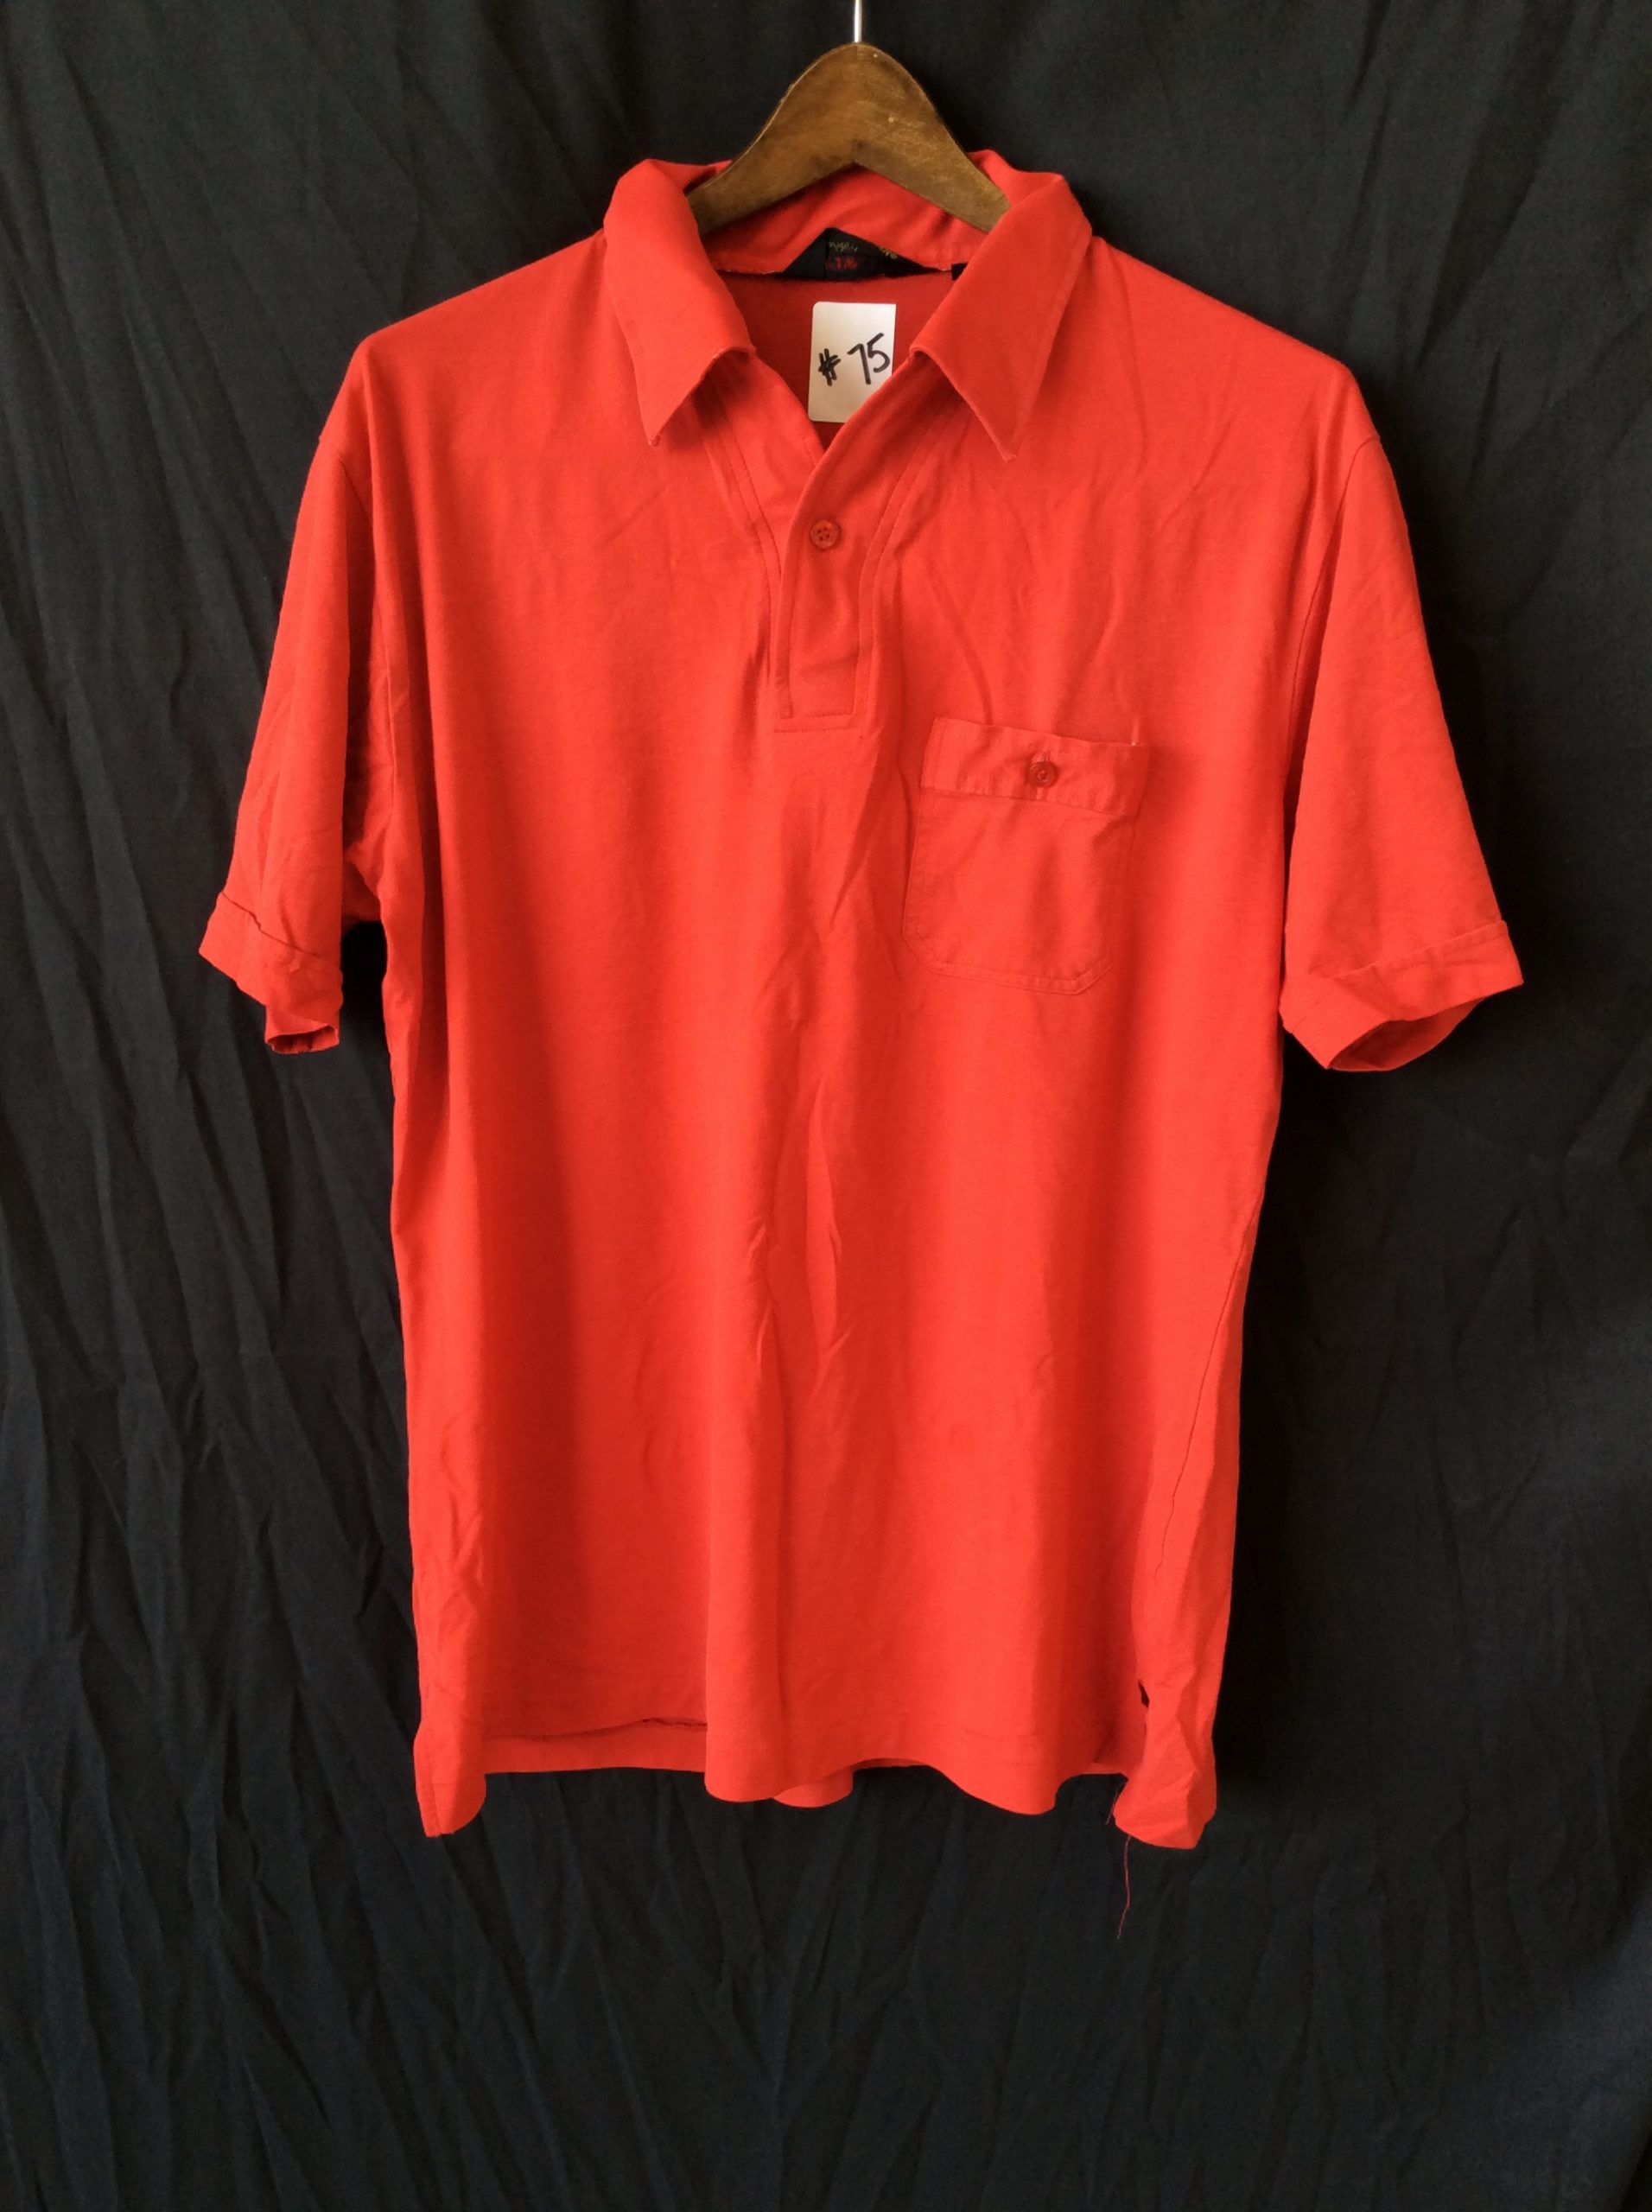 Women's red polo, size xl